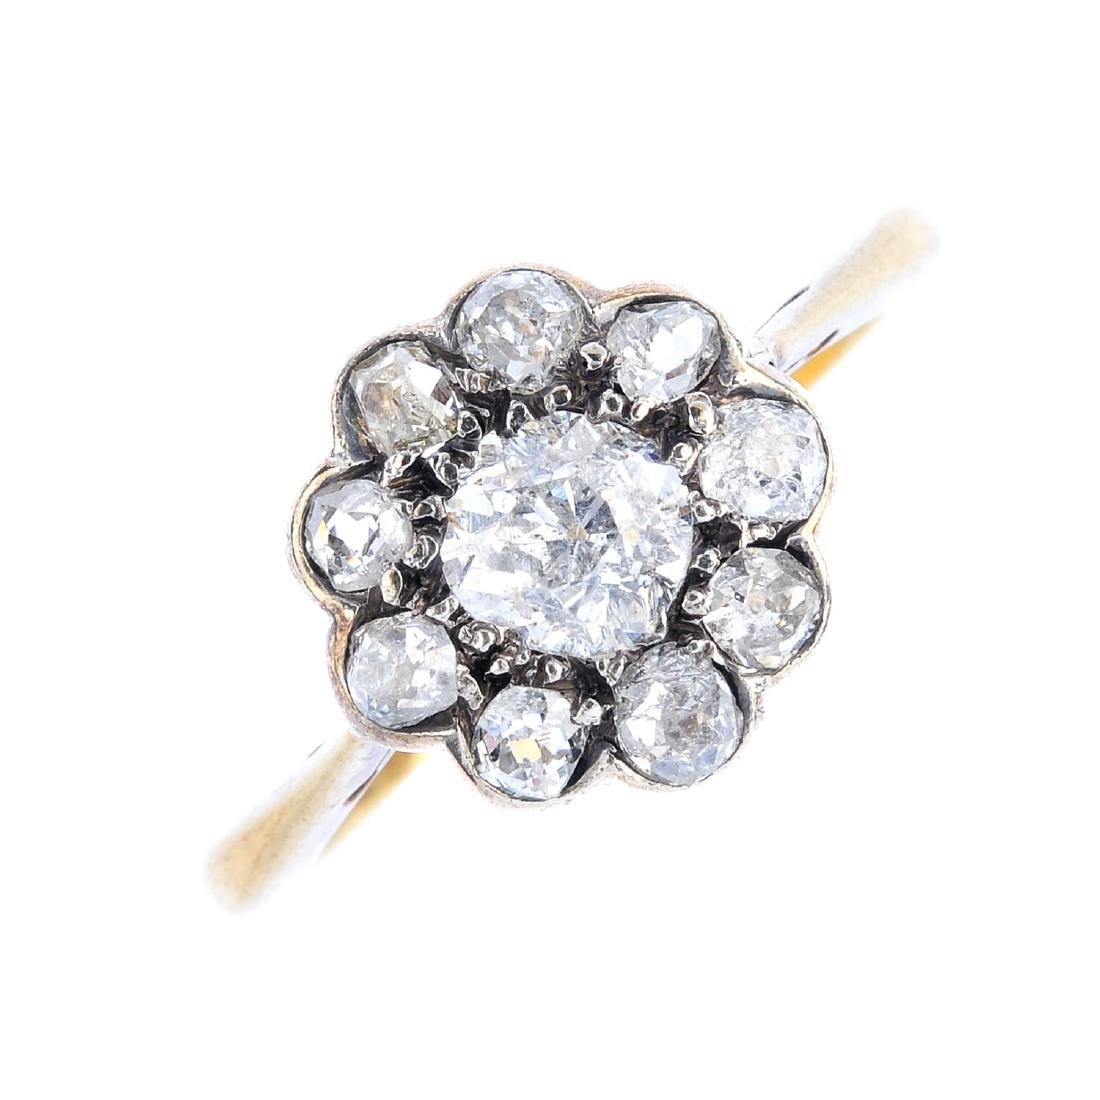 A diamond cluster ring. The old-cut diamond, with